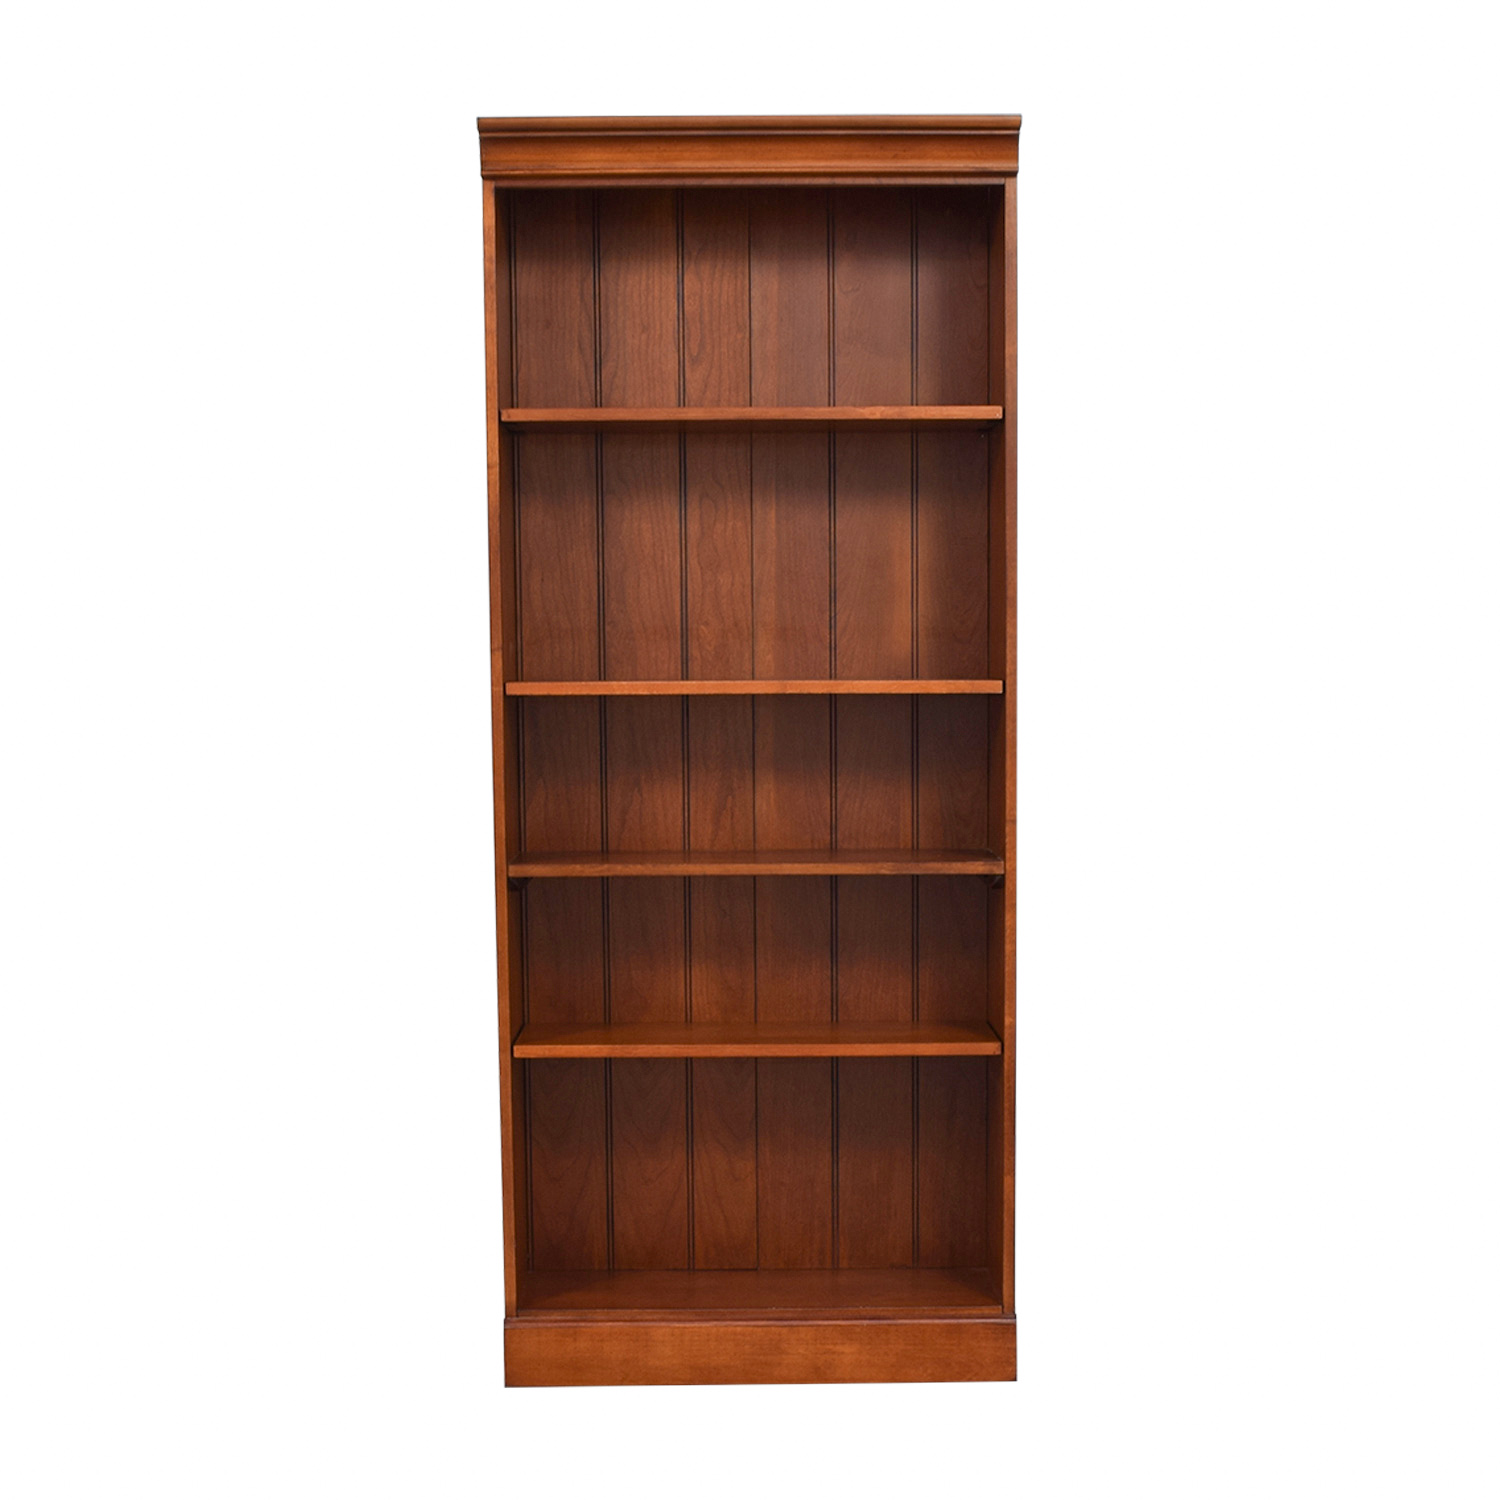 Raymour & Flanigan Five Shelf Bookcase sale